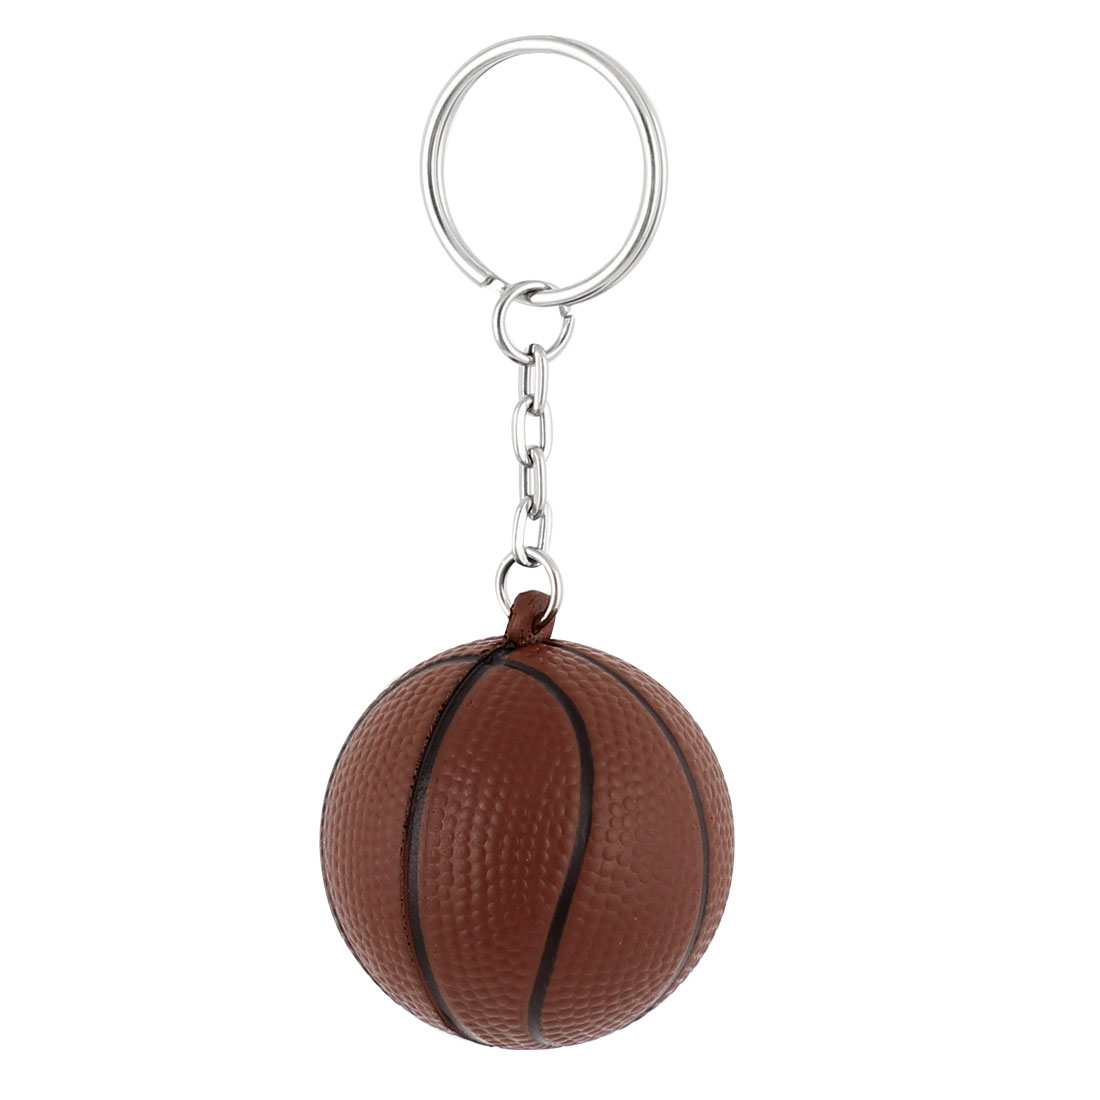 Rubber Basketball Shaped Pendant Split Ring Keychain Keyring Key Holder Brown